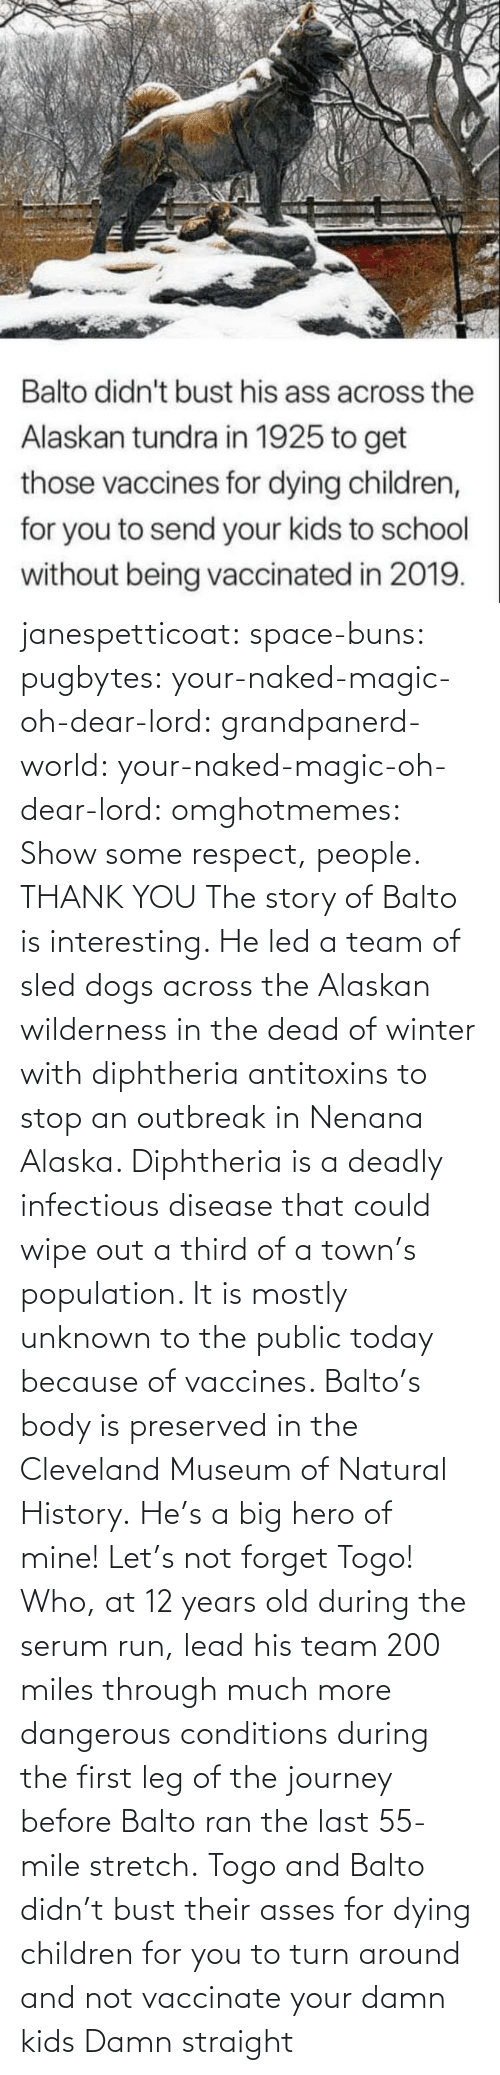 Journey: janespetticoat: space-buns:  pugbytes:   your-naked-magic-oh-dear-lord:  grandpanerd-world:   your-naked-magic-oh-dear-lord:  omghotmemes: Show some respect, people.  THANK YOU   The story of Balto is interesting. He led a team of sled dogs across the Alaskan wilderness in the dead of winter with diphtheria antitoxins to stop an outbreak in Nenana Alaska. Diphtheria is a deadly infectious disease that could wipe out a third of a town's population. It is mostly unknown to the public today because of vaccines. Balto's body is preserved in the Cleveland Museum of Natural History.   He's a big hero of mine!   Let's not forget Togo! Who, at 12 years old during the serum run, lead his team 200 miles through much more dangerous conditions during the first leg of the journey before Balto ran the last 55-mile stretch.   Togo and Balto didn't bust their asses for dying children for you to turn around and not vaccinate your damn kids    Damn straight